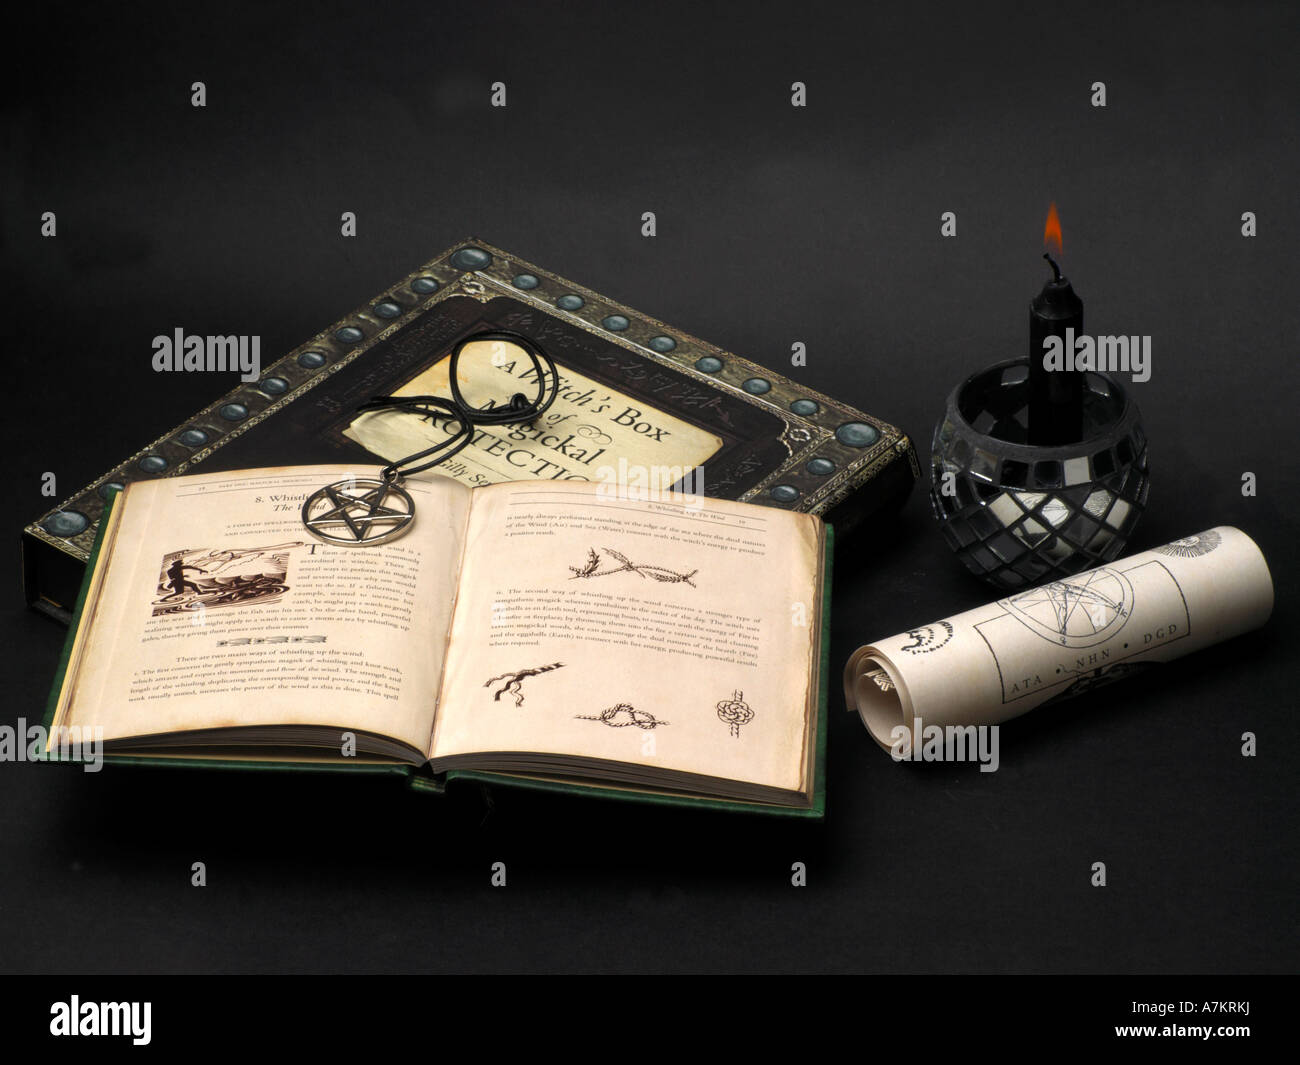 Witches Protection, Scroll, Candle, Pentacle & Spell Book - Stock Image